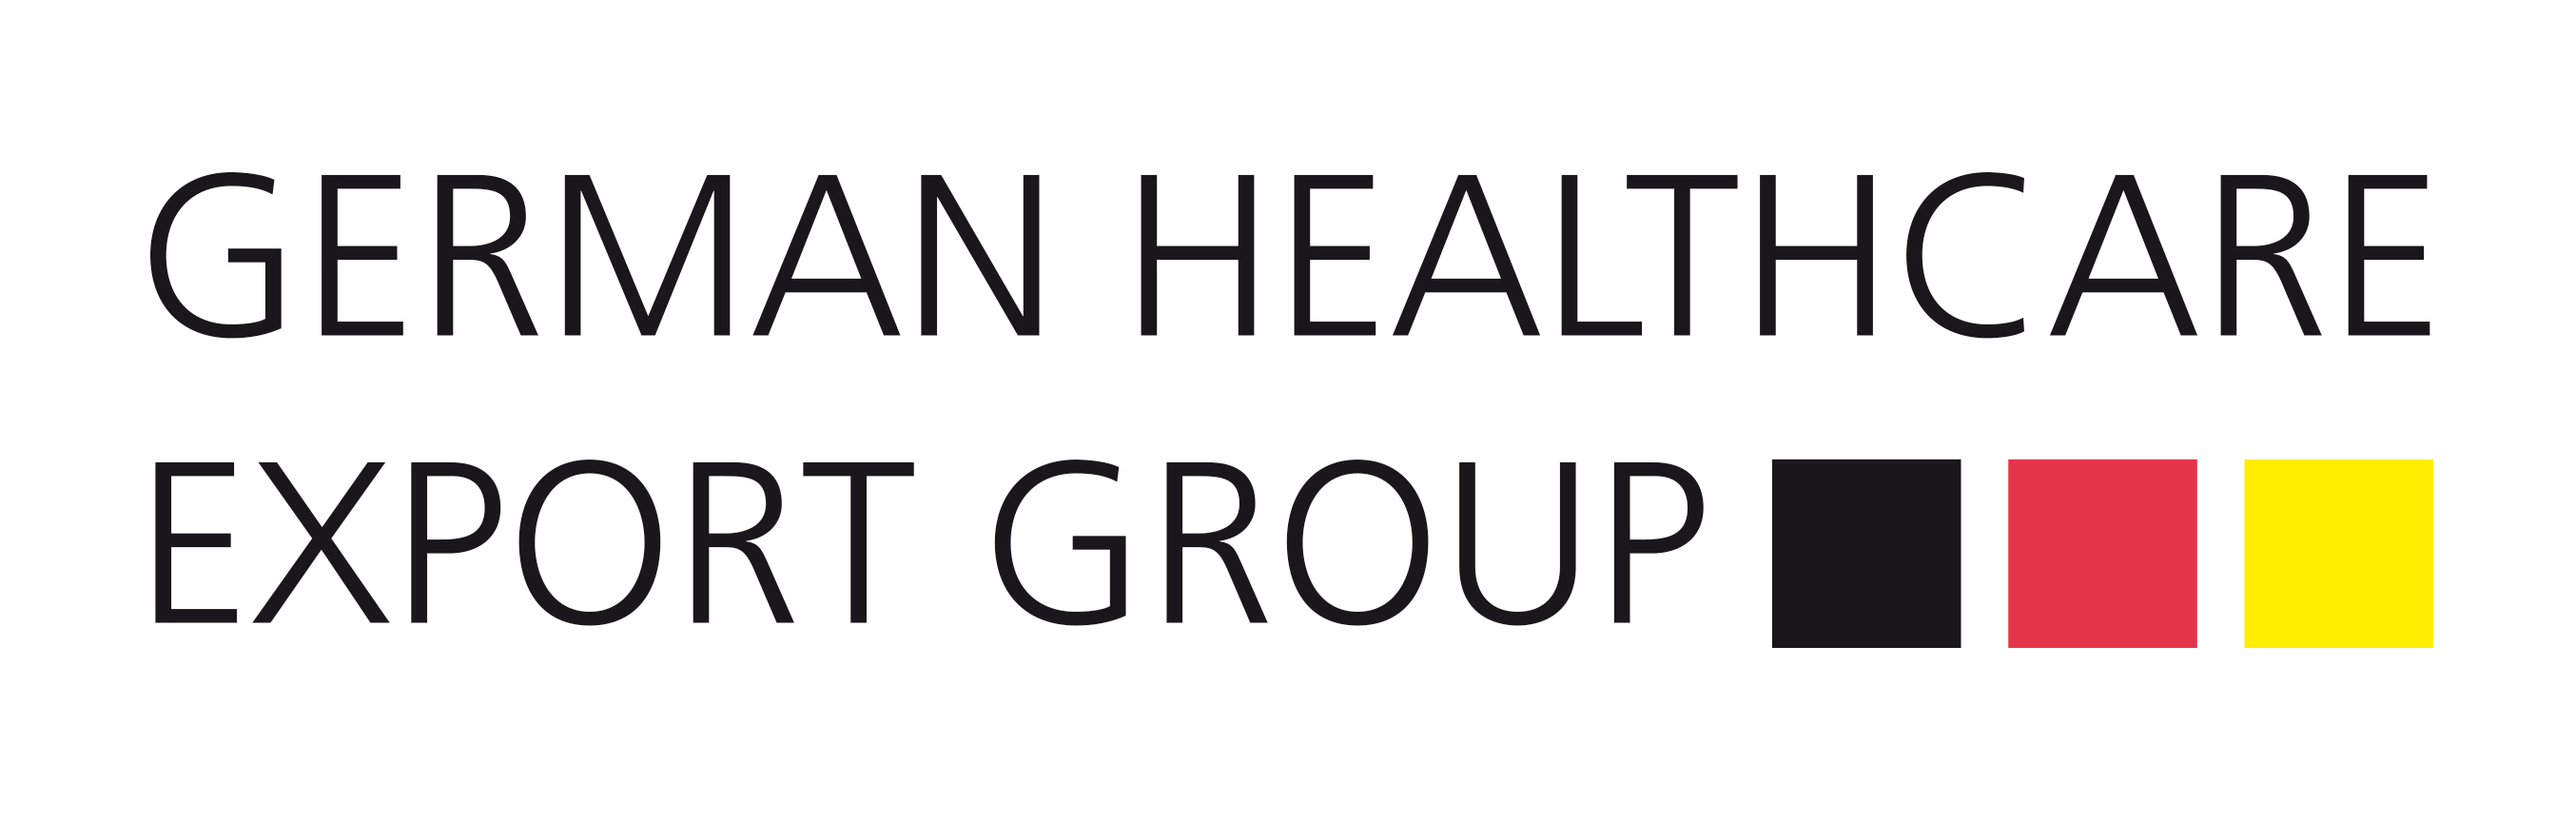 German Healthcare Export Group_Logo